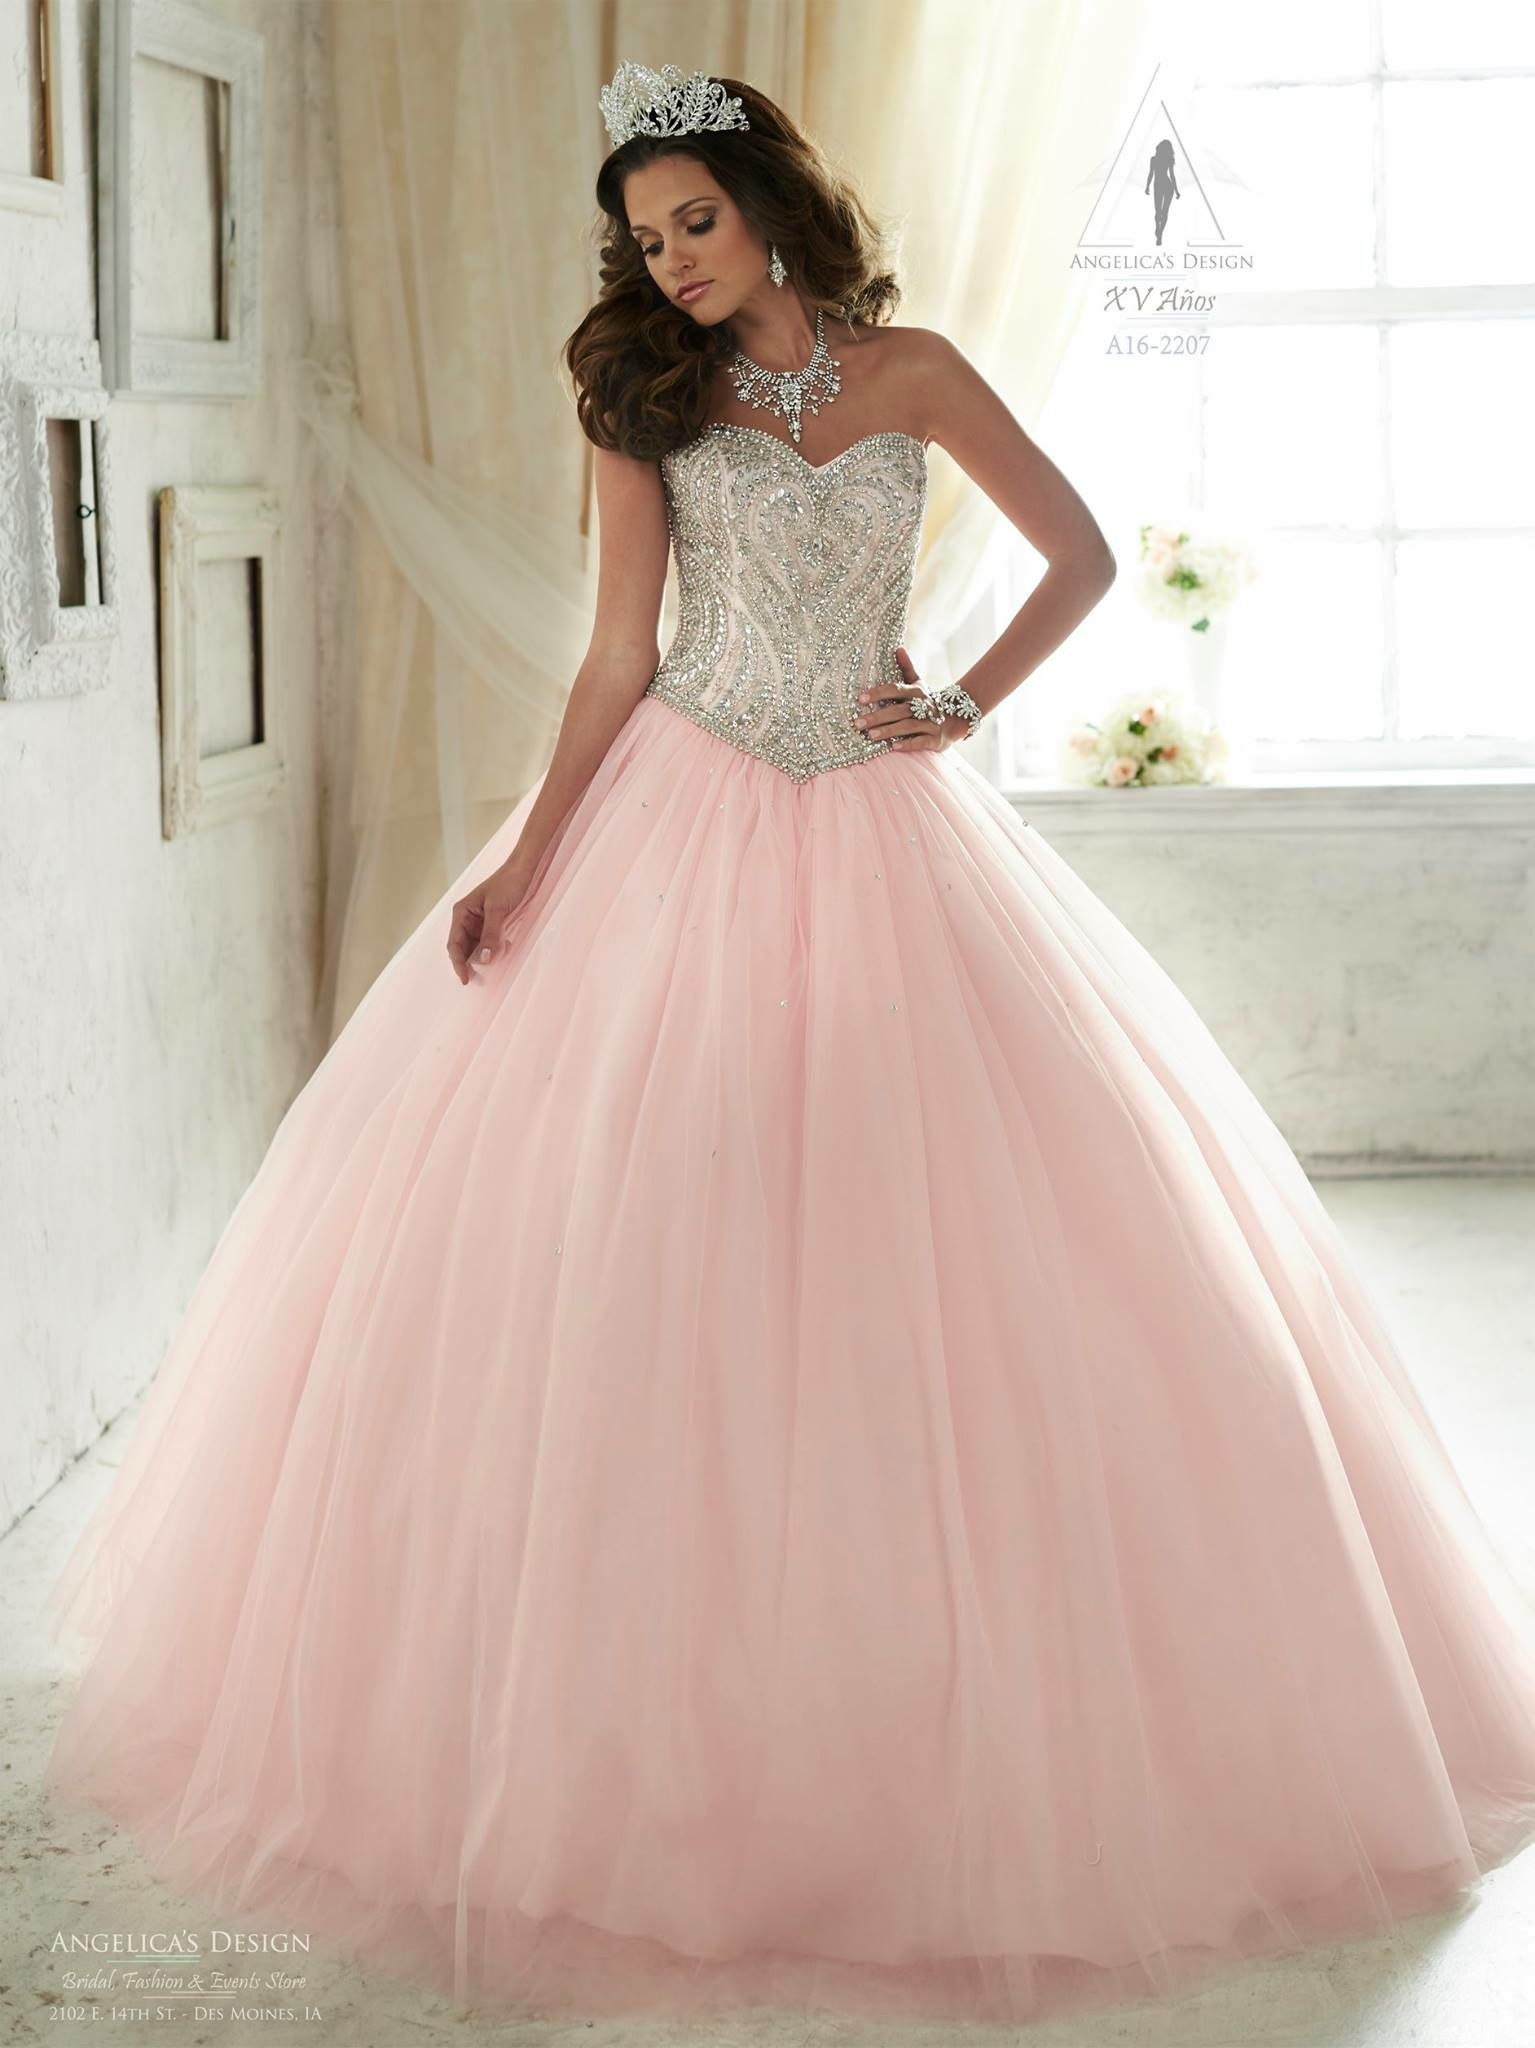 Pin de Morgan en Dresses | Pinterest | Vestido de quince, Remedios ...